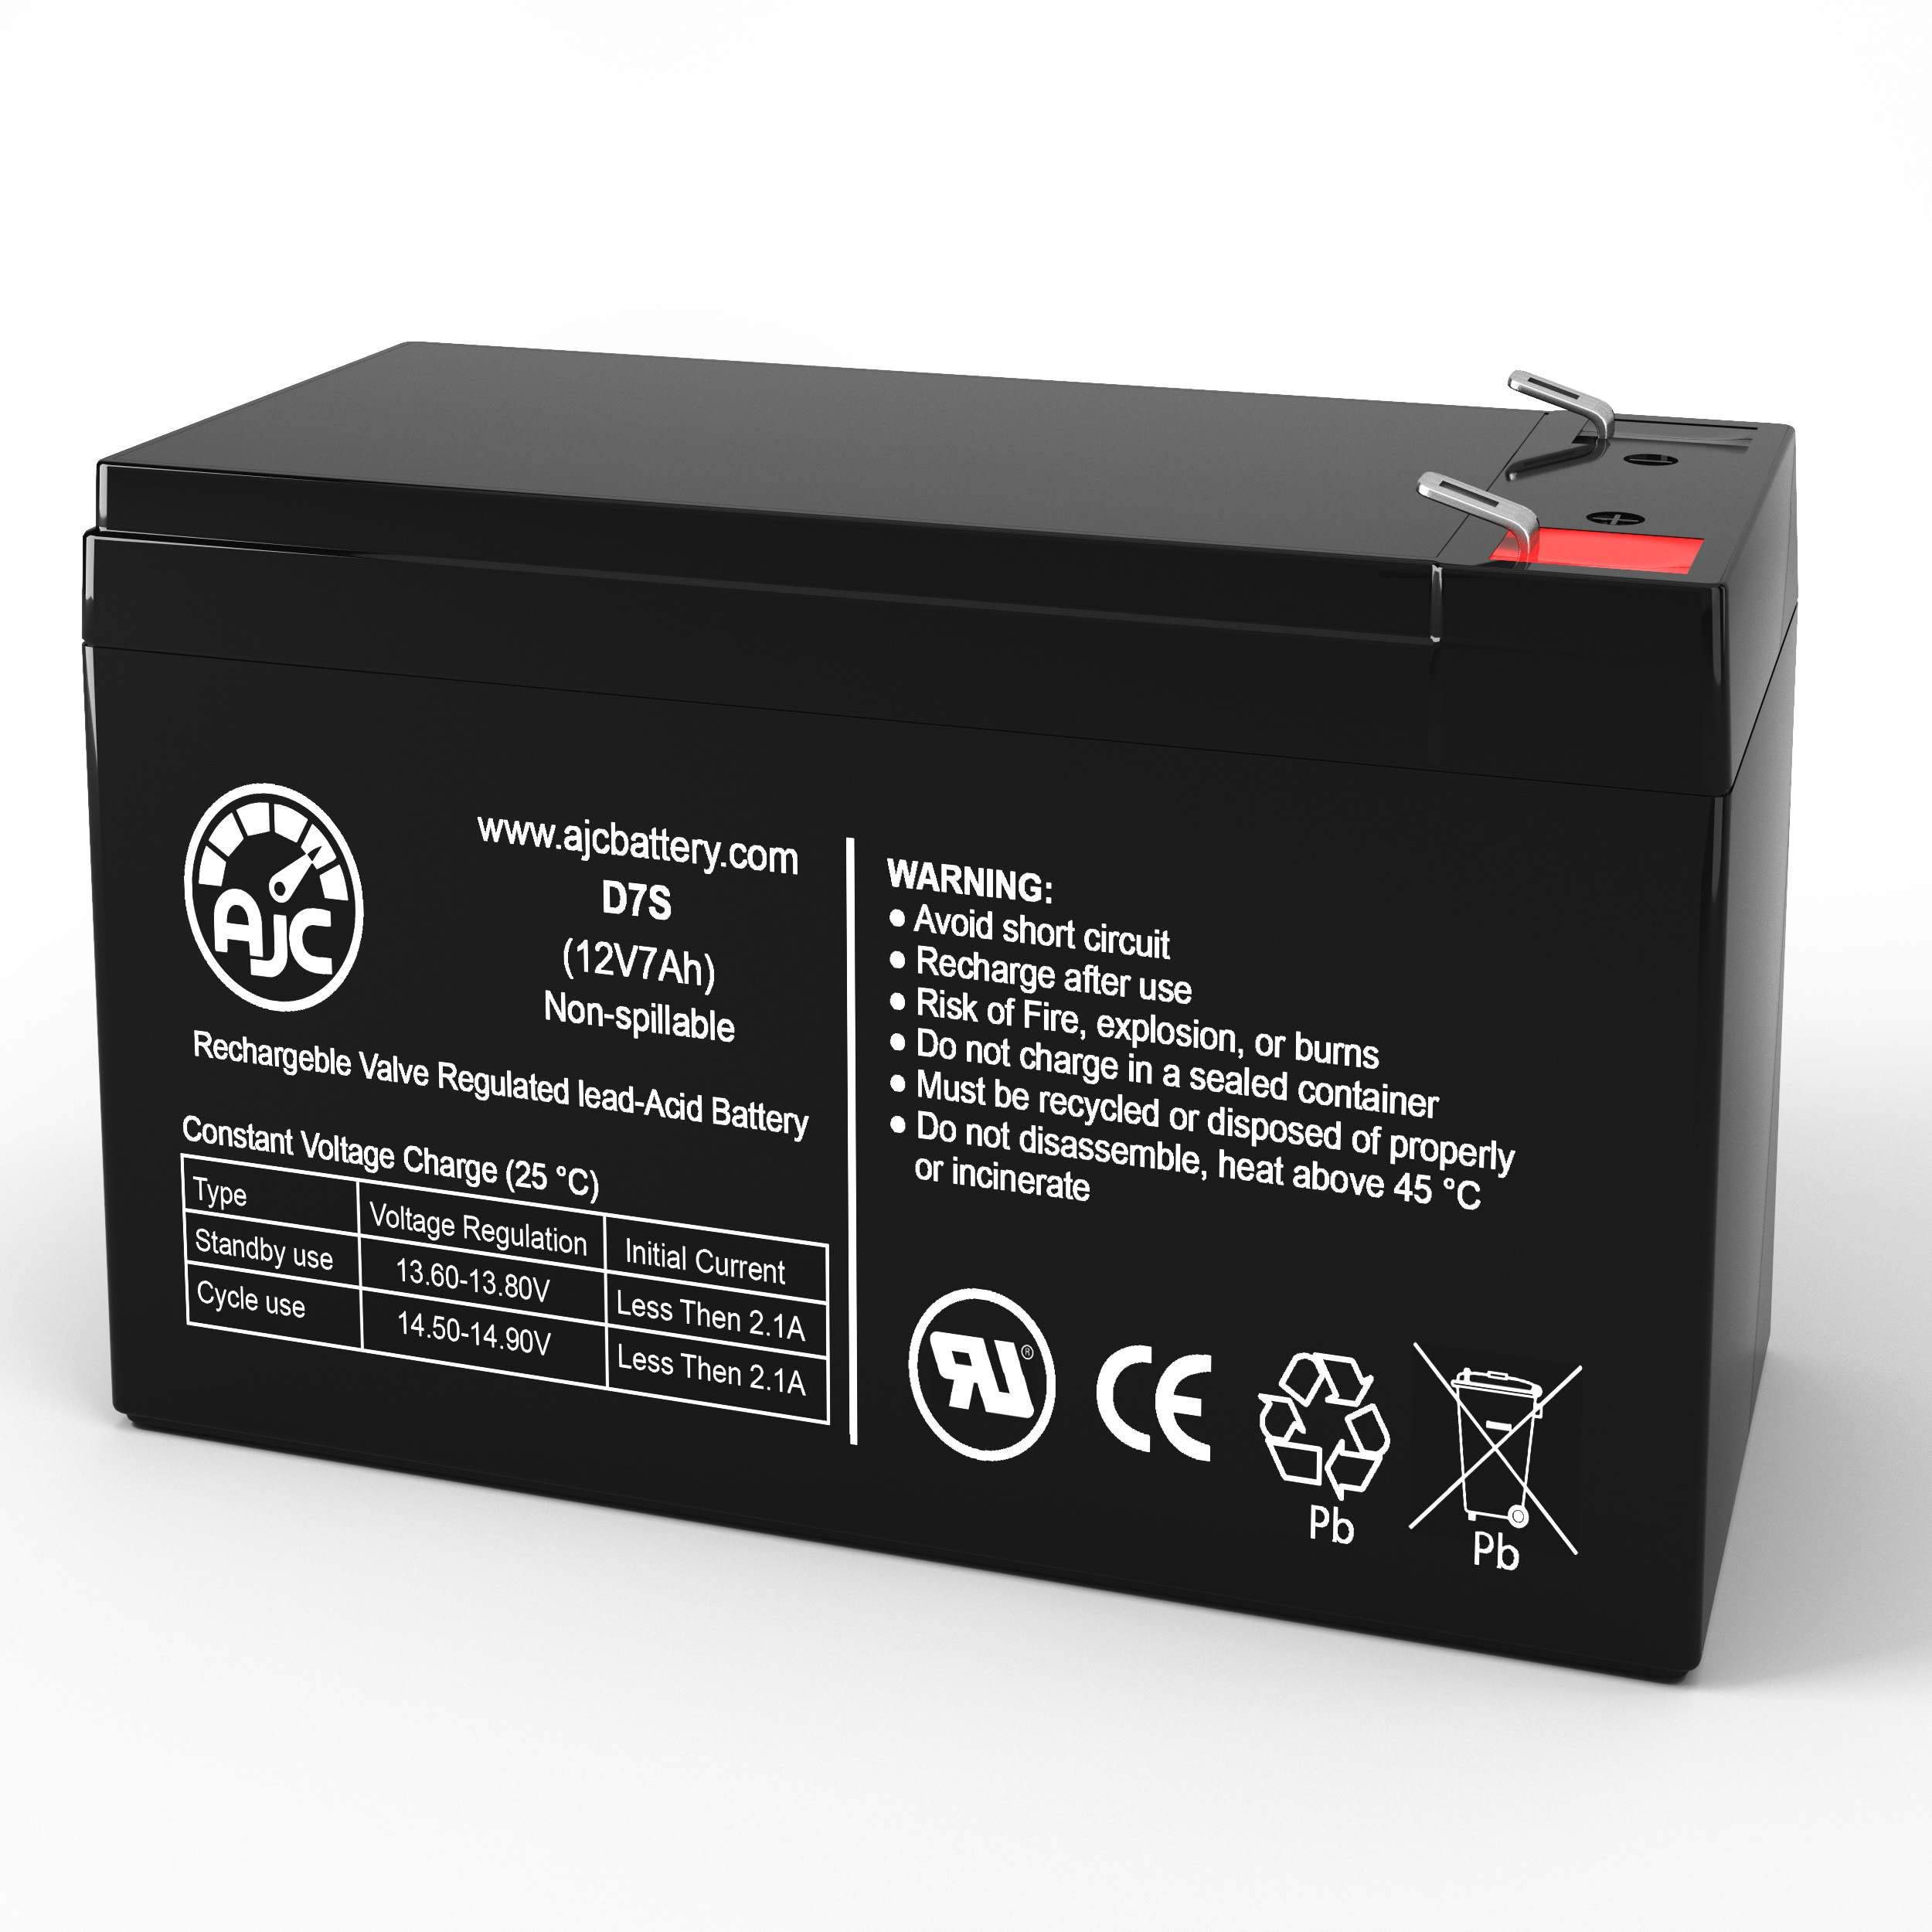 Amazon Com Adt Vista 20p 12v 7ah Alarm Battery This Is An Ajc Brand Replacement Electronics